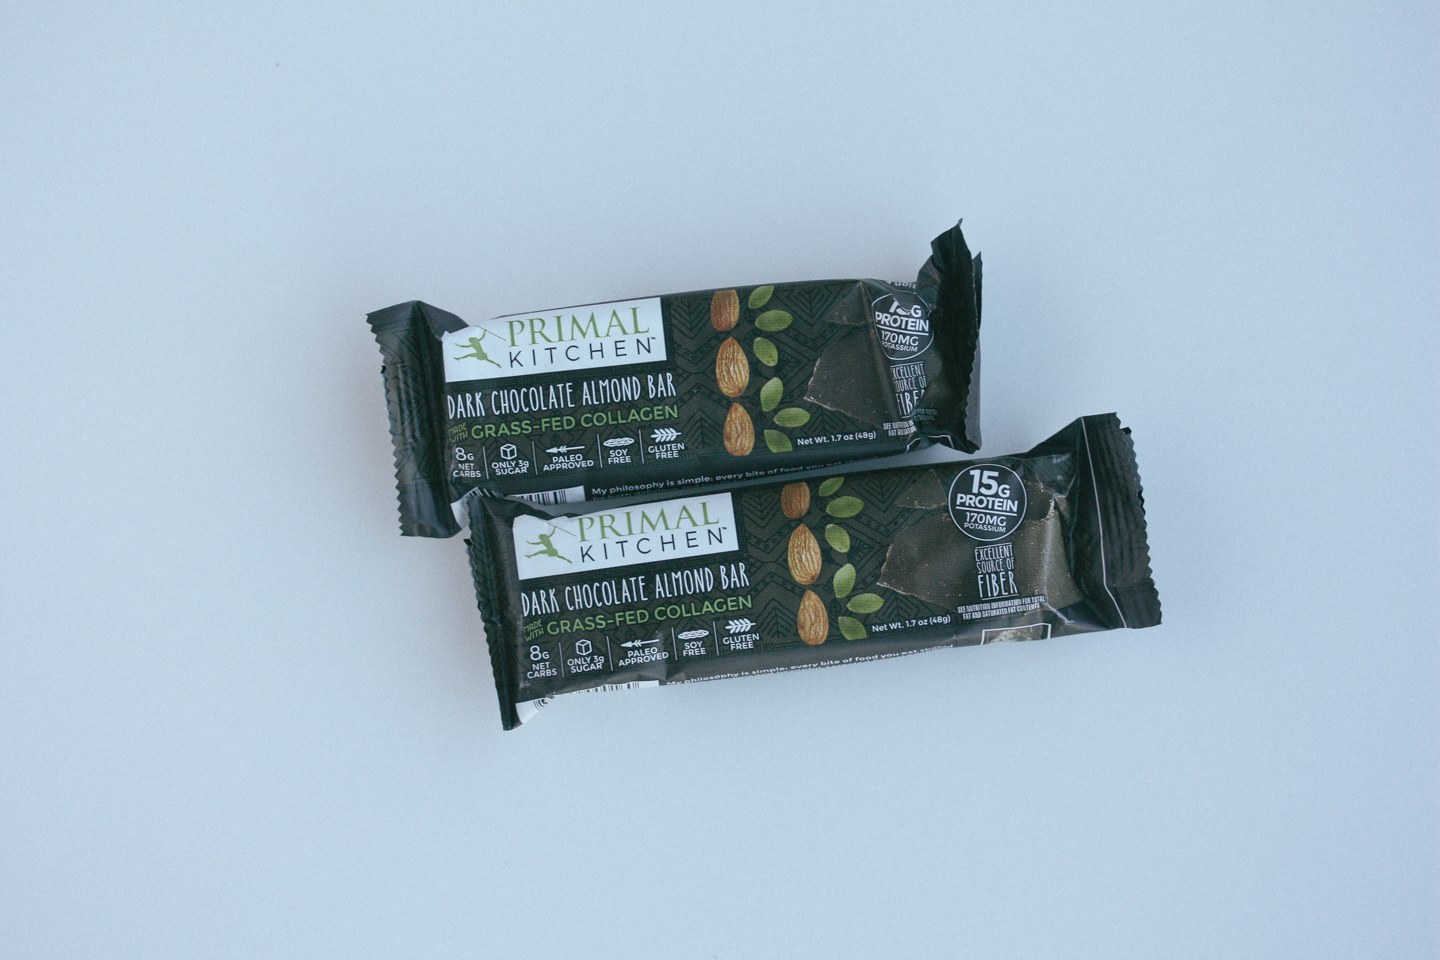 primal kitchen dark chocolate almond bar review - that's so primal